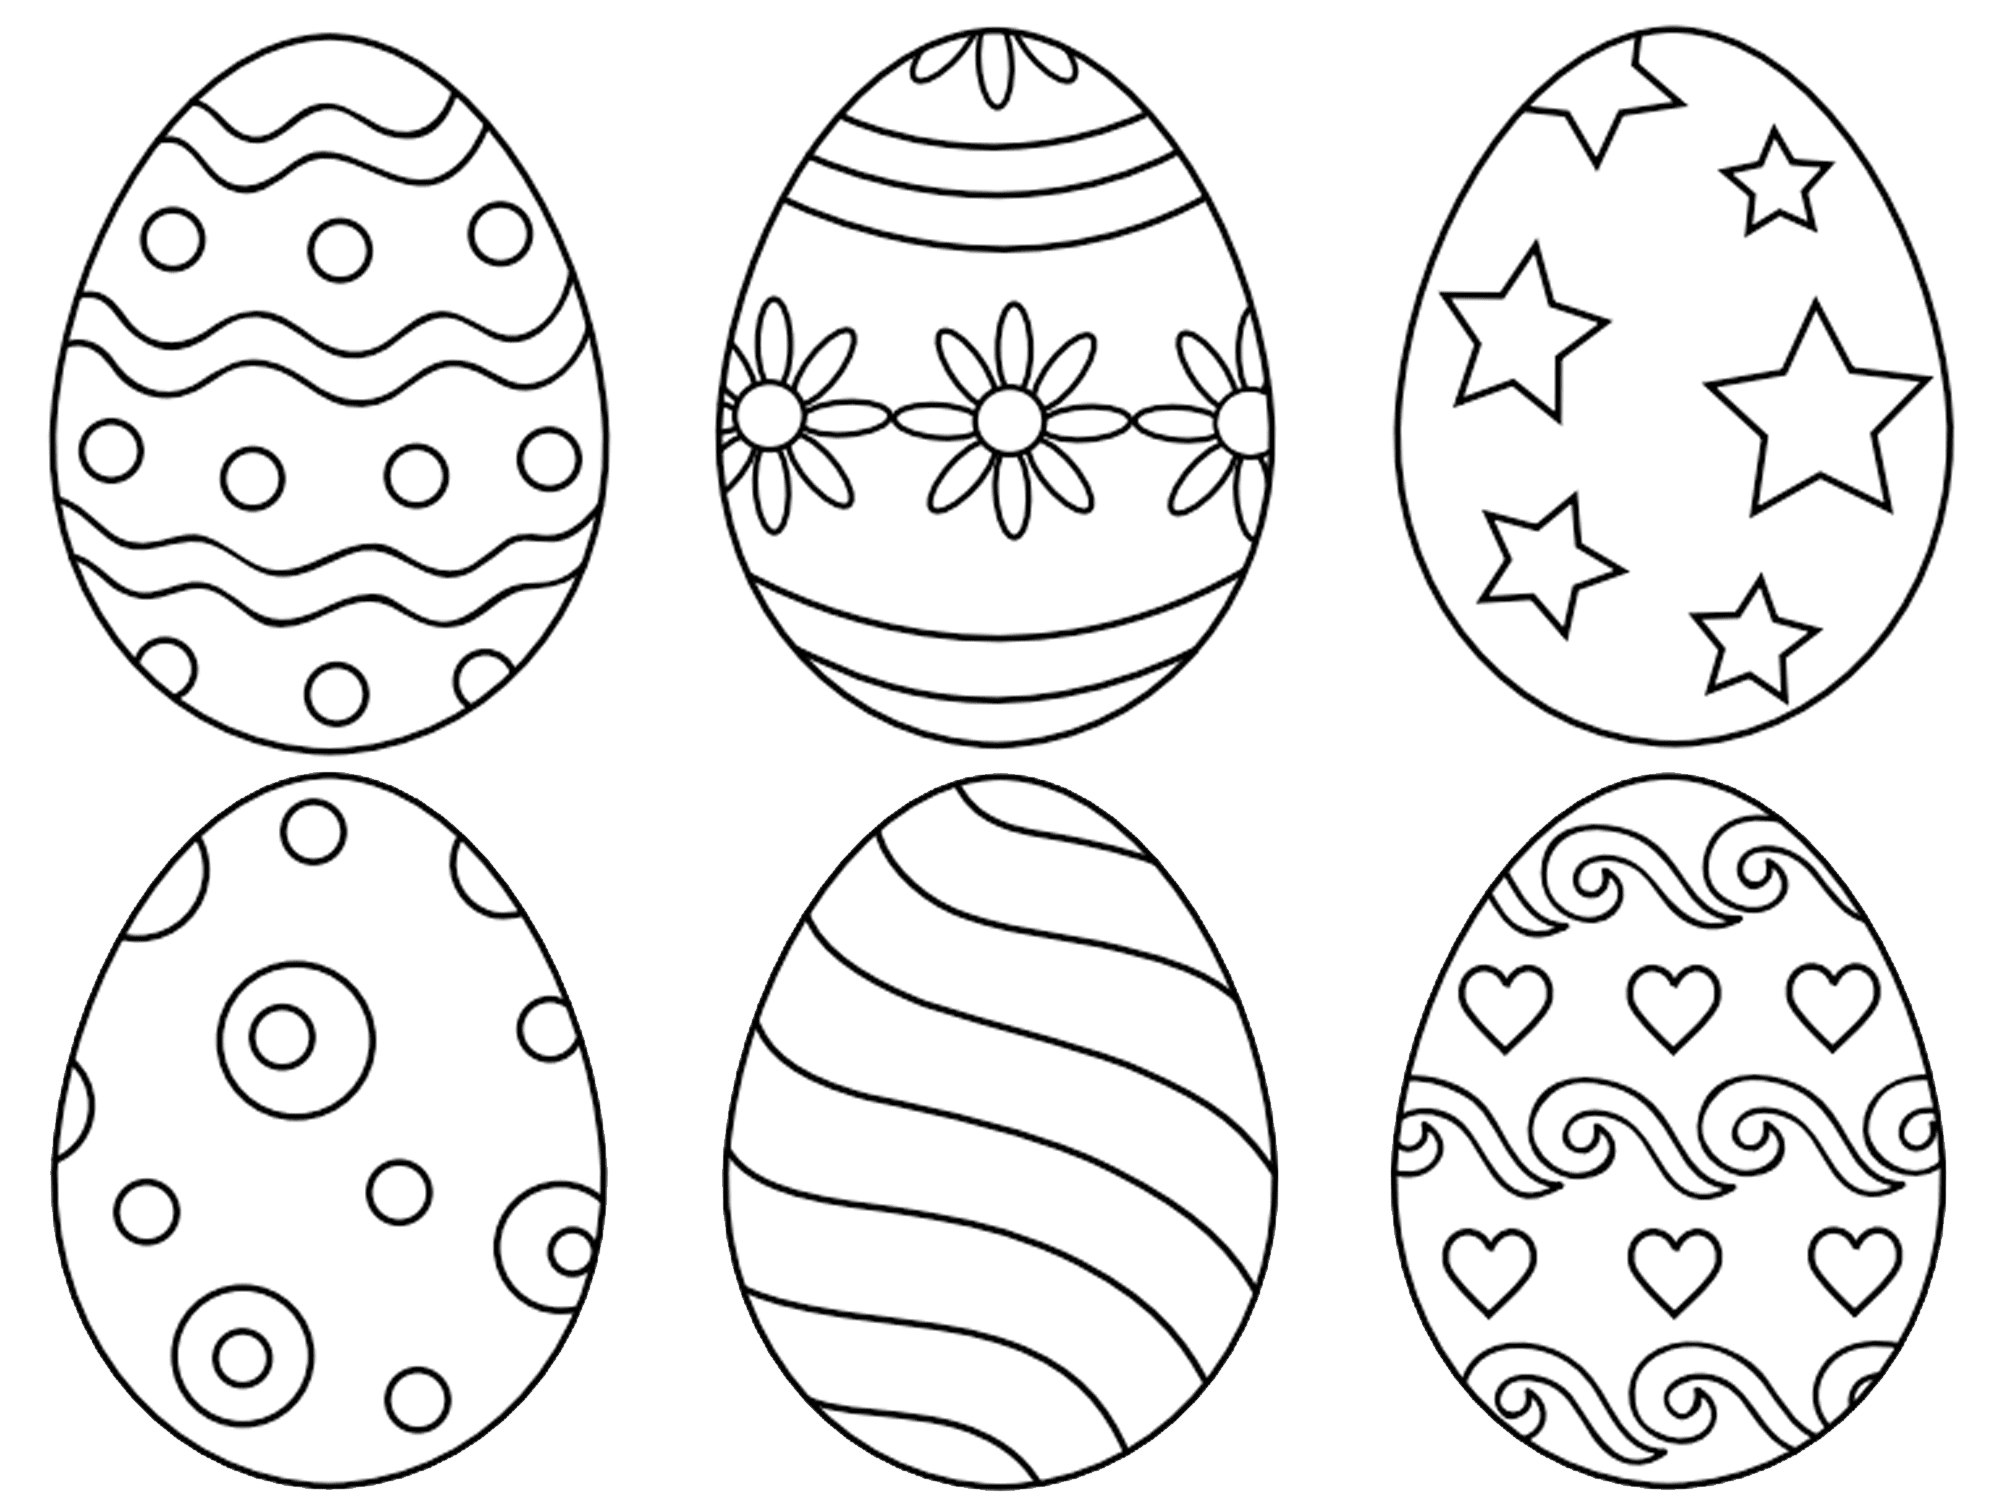 easter egg coloring pictures 7 places for free printable easter egg coloring pages coloring pictures egg easter